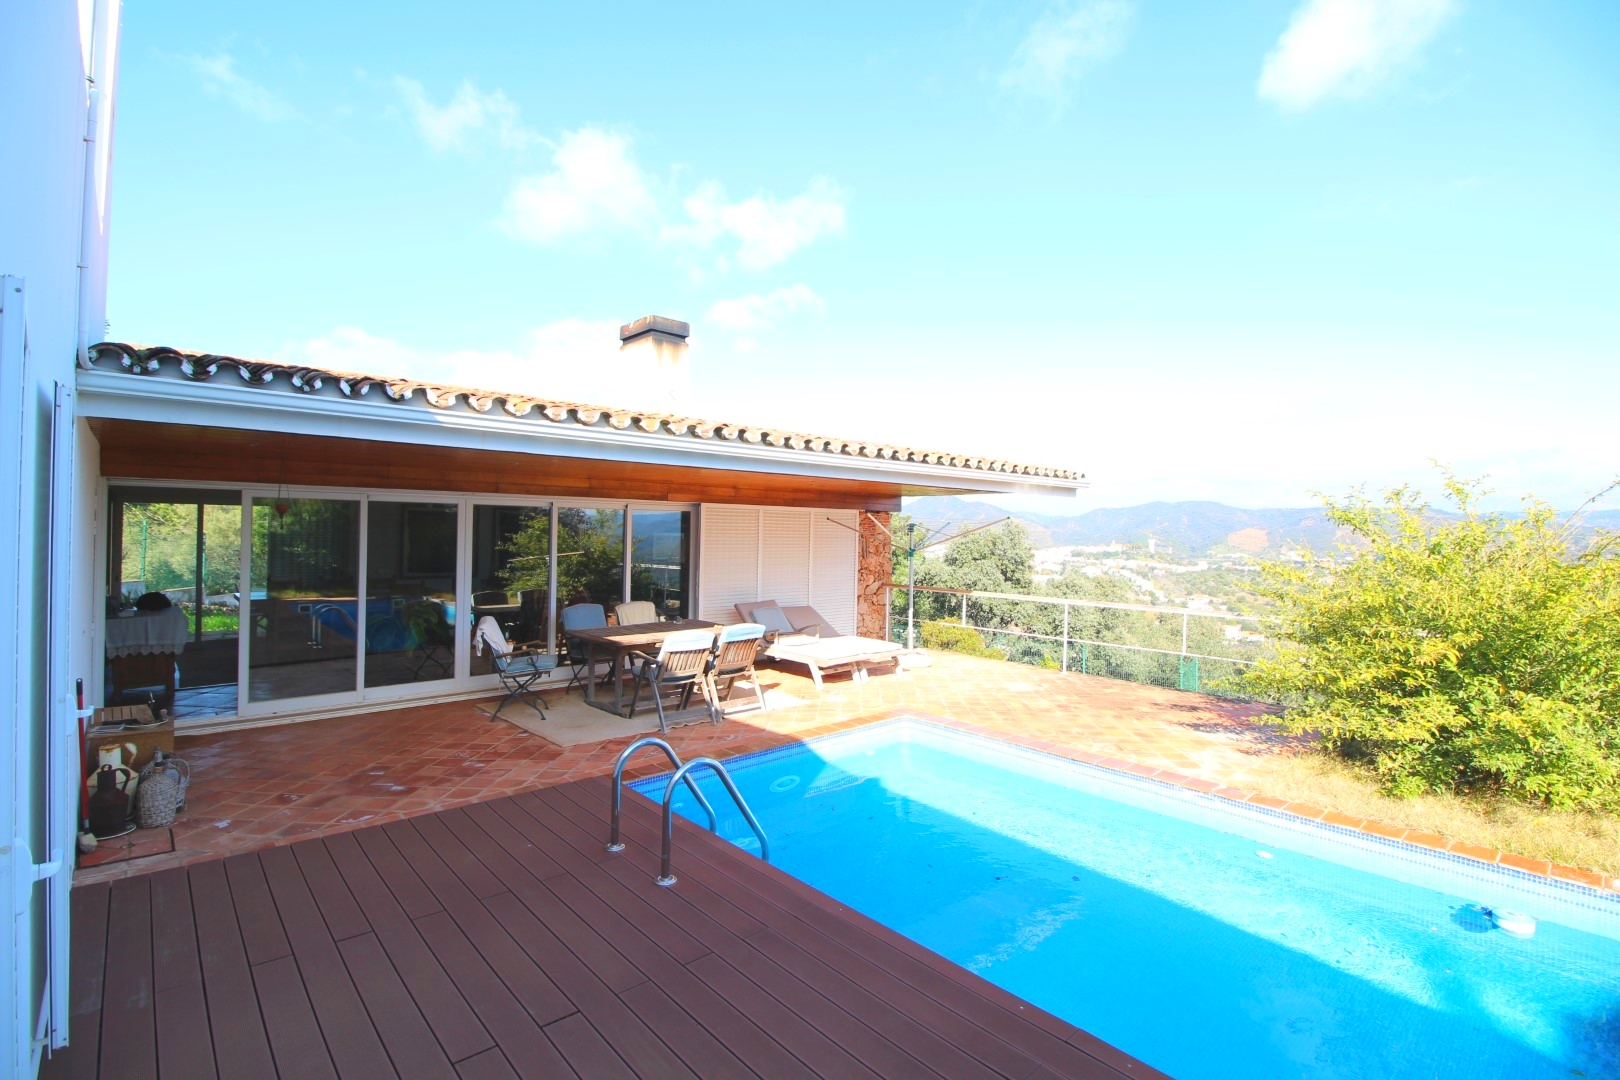 Designer Villa with Extensive Views of Algarve Hills – 30 mins to Faro Airport